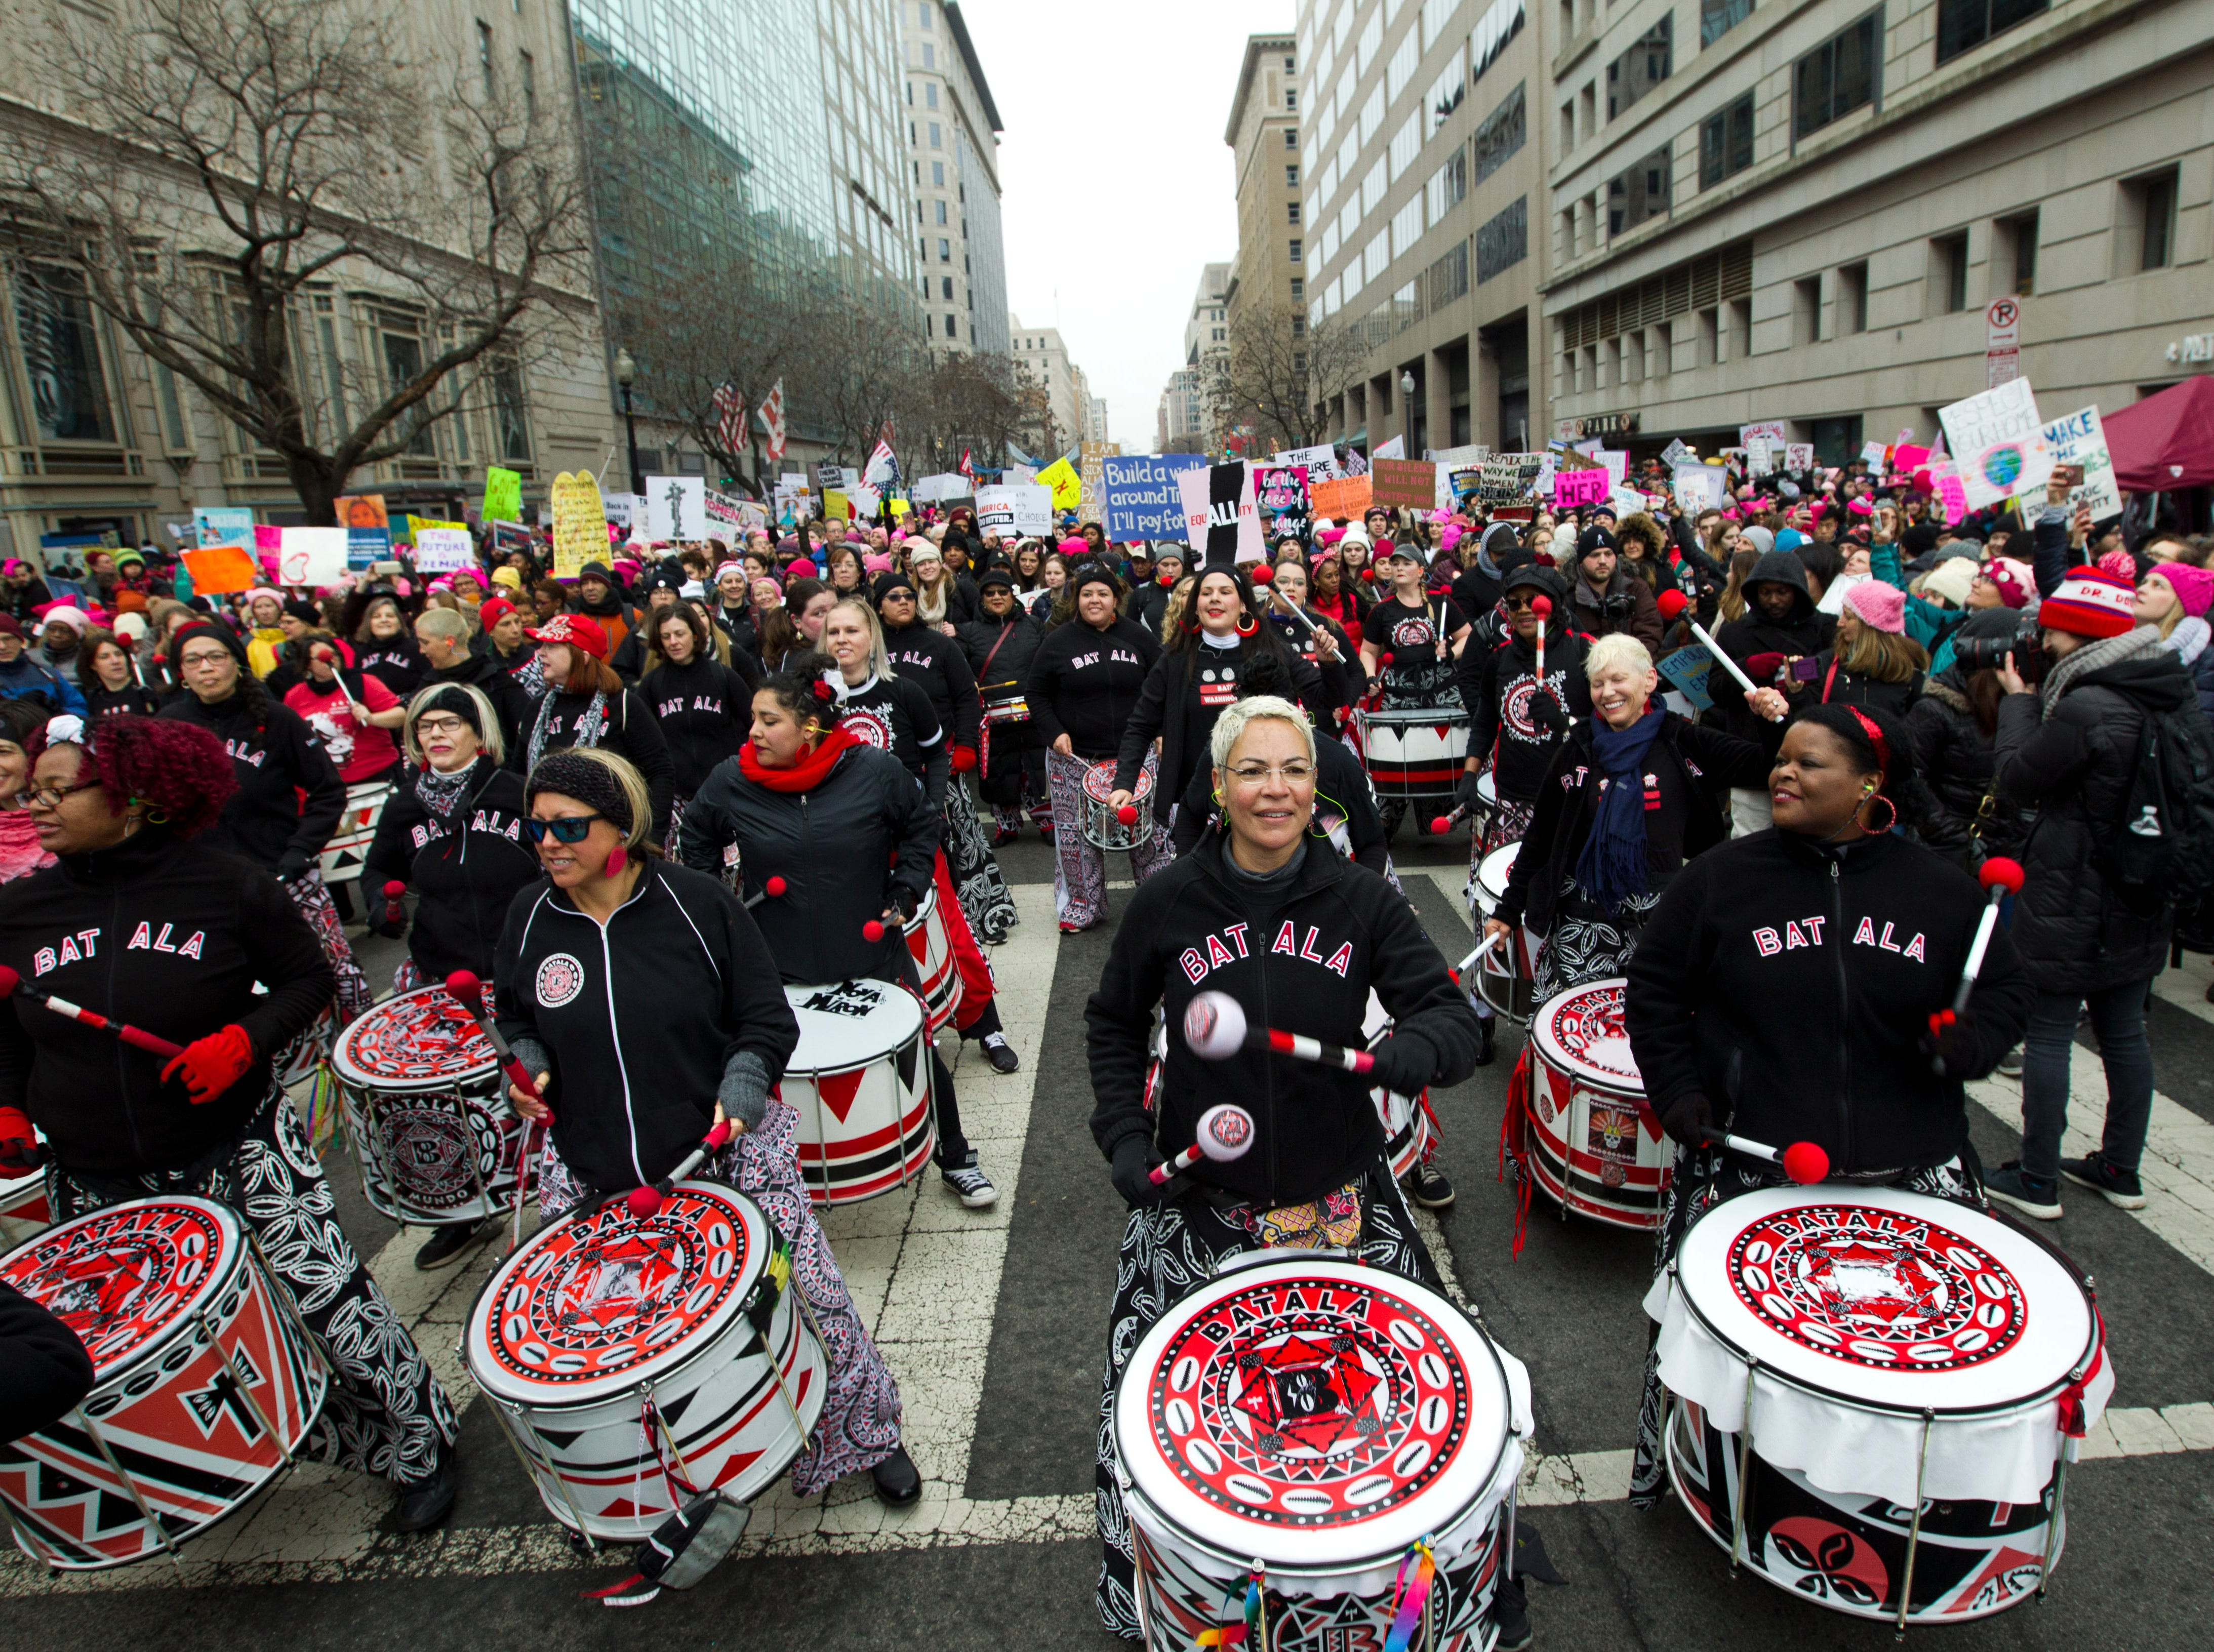 The drummer group Batala performs with demonstrators during the Women's March in Washington on Saturday, Jan. 19, 2019.